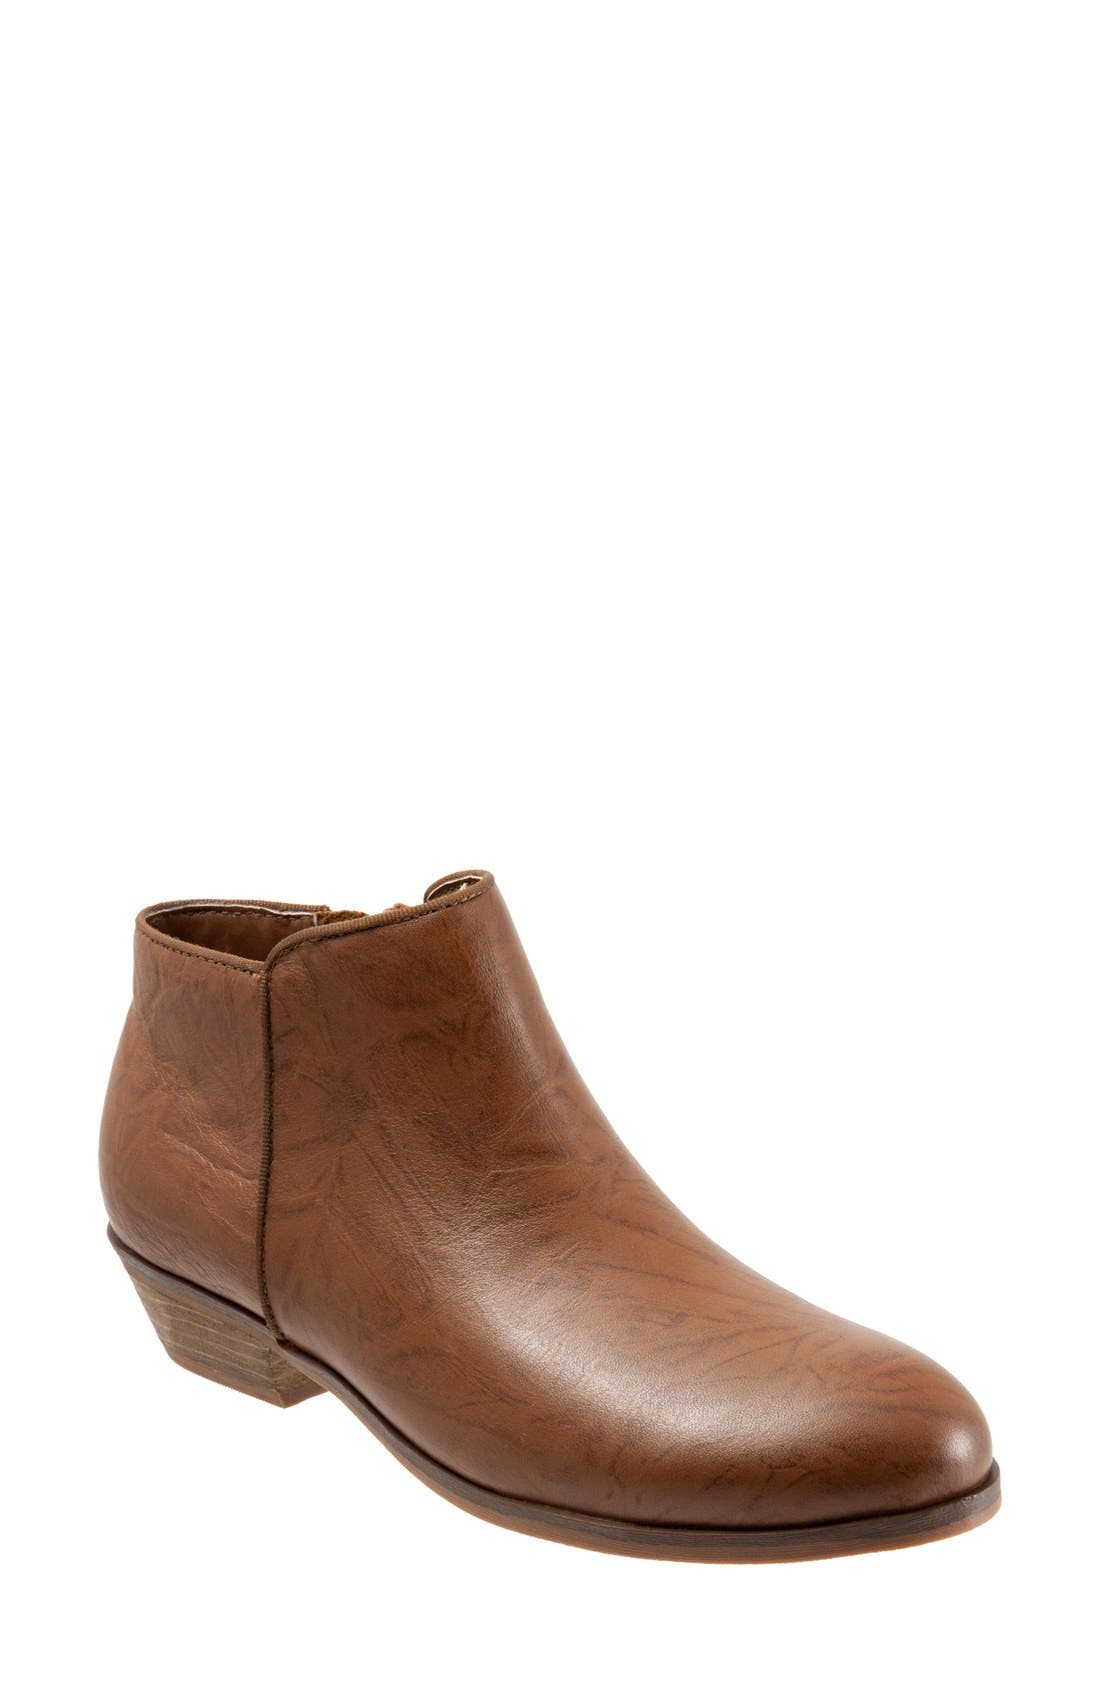 Alternate Image 1 Selected - SoftWalk® 'Rocklin' Bootie (Women)